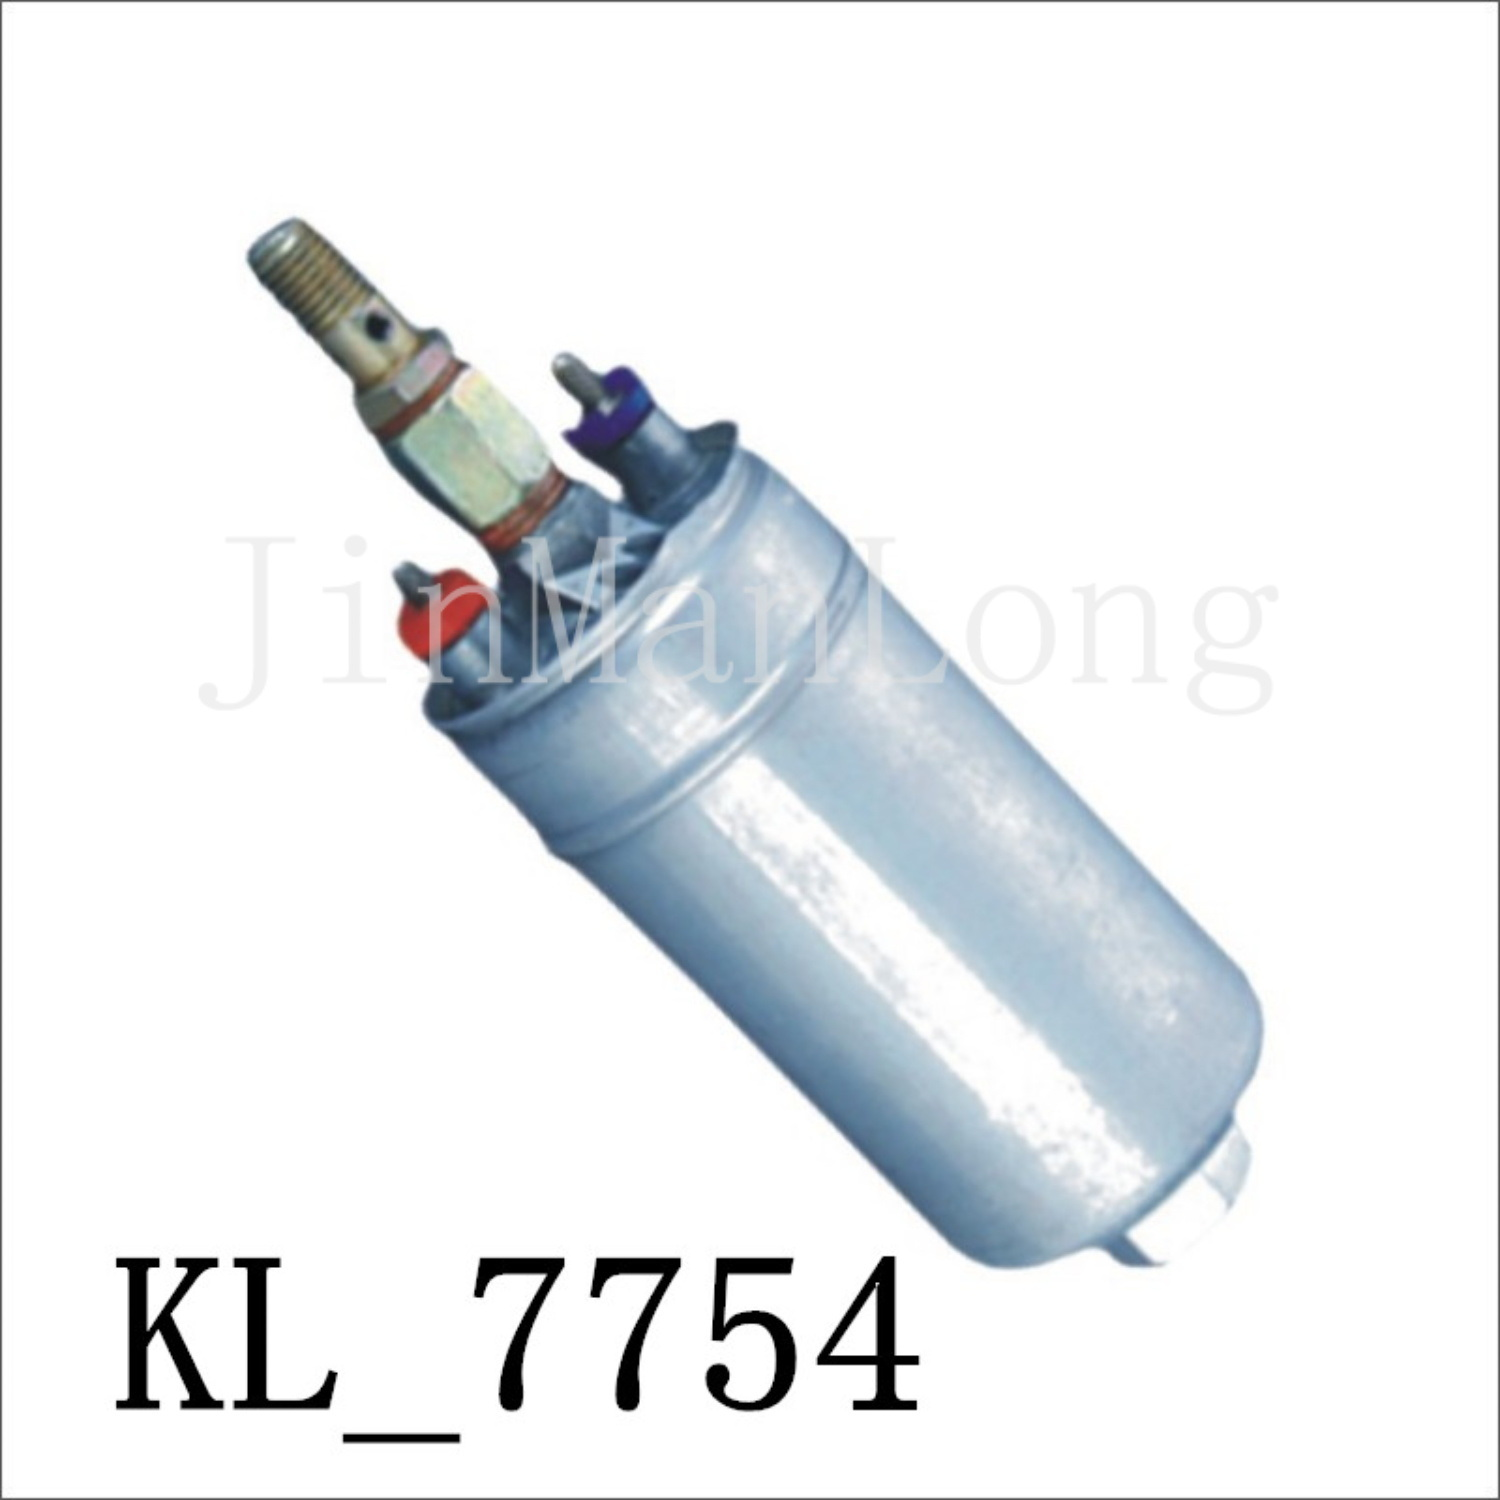 Auto Spare Parts Electrioc Fuel Pump for Audi (0580254044) with Kl-7754